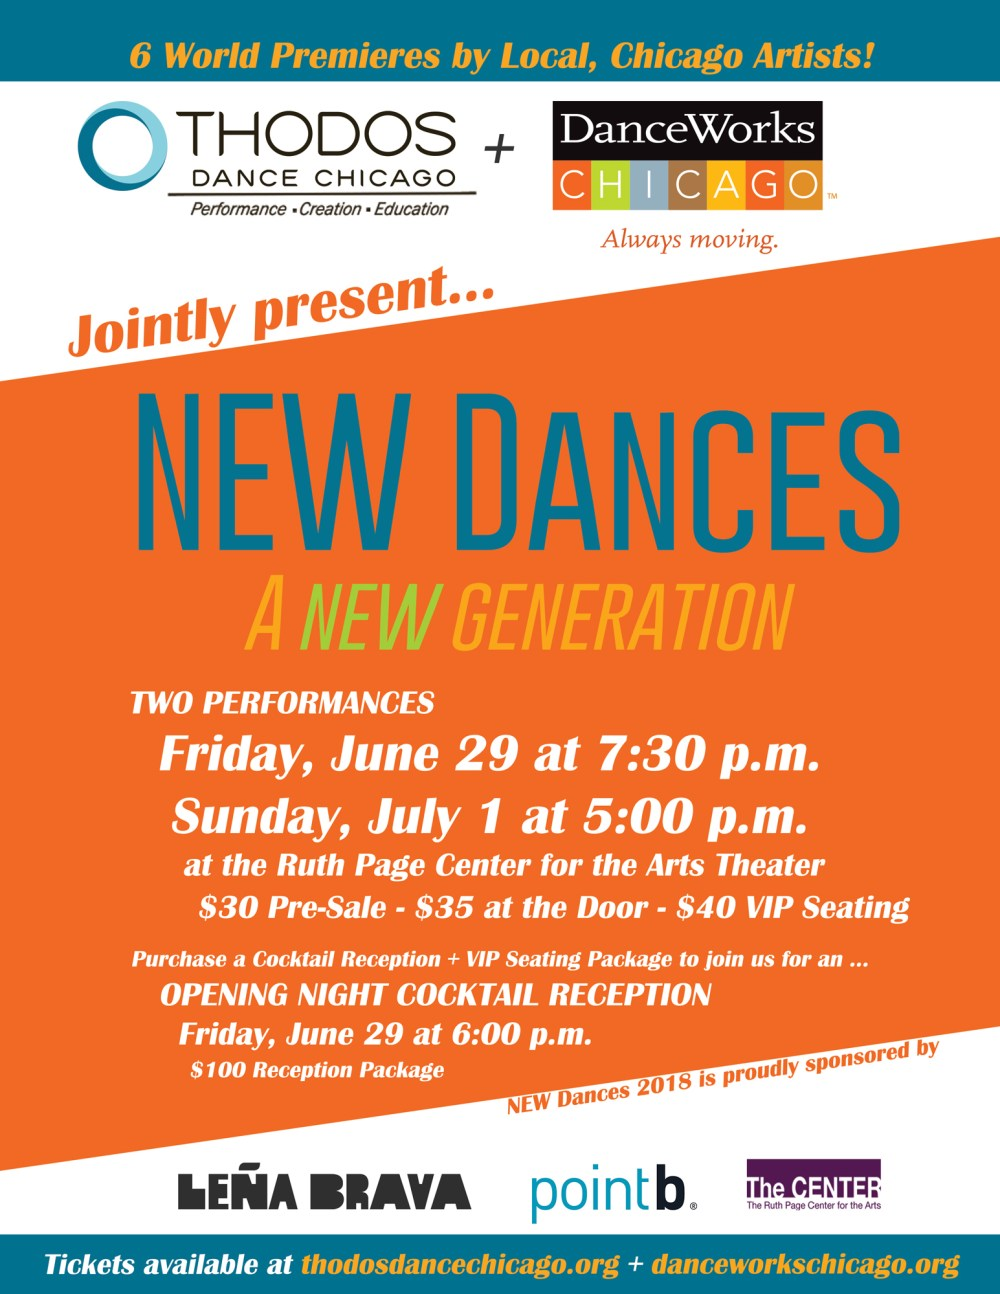 New Dances (Courtesy of DanceWorks Chicago and Thodos Dance Chicago)